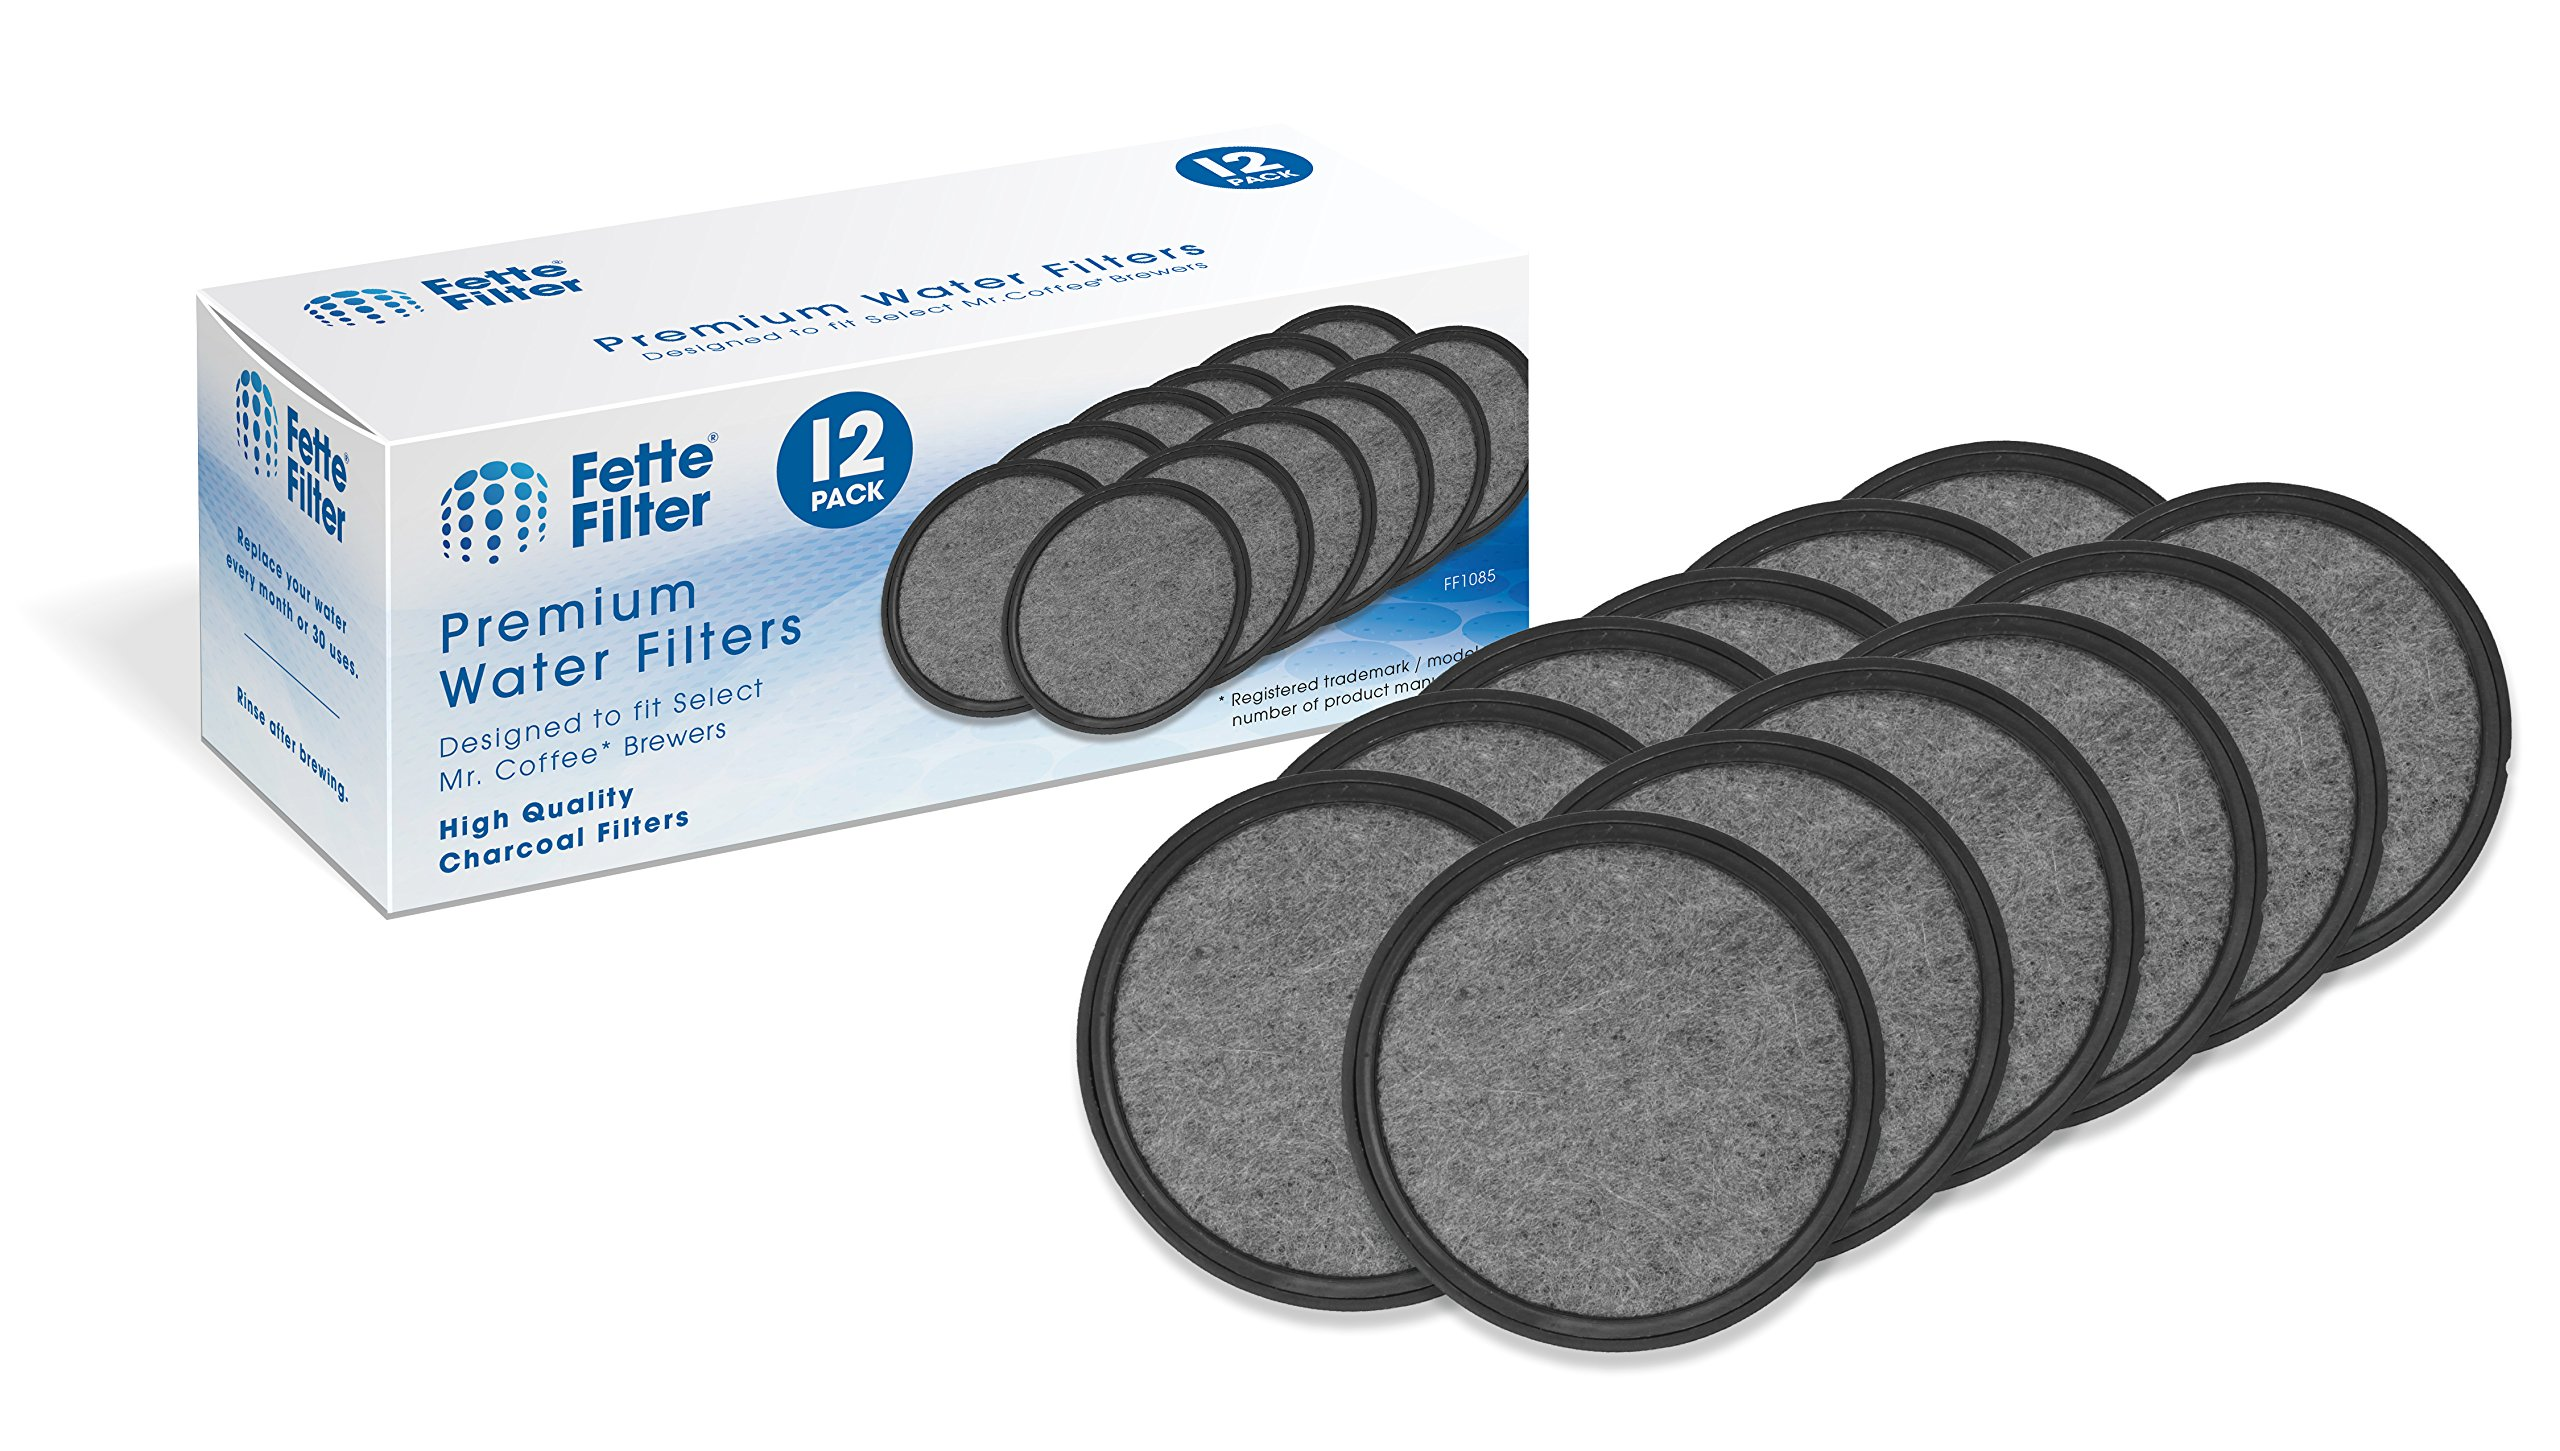 12-Pack - Mr. Coffee Compatible Water Filters - Universal Fit Mr. Coffee Compatible Filters - Replacement Charcoal Water Filter Discs for Mr. Coffee Coffee Brewers by Fette Filter